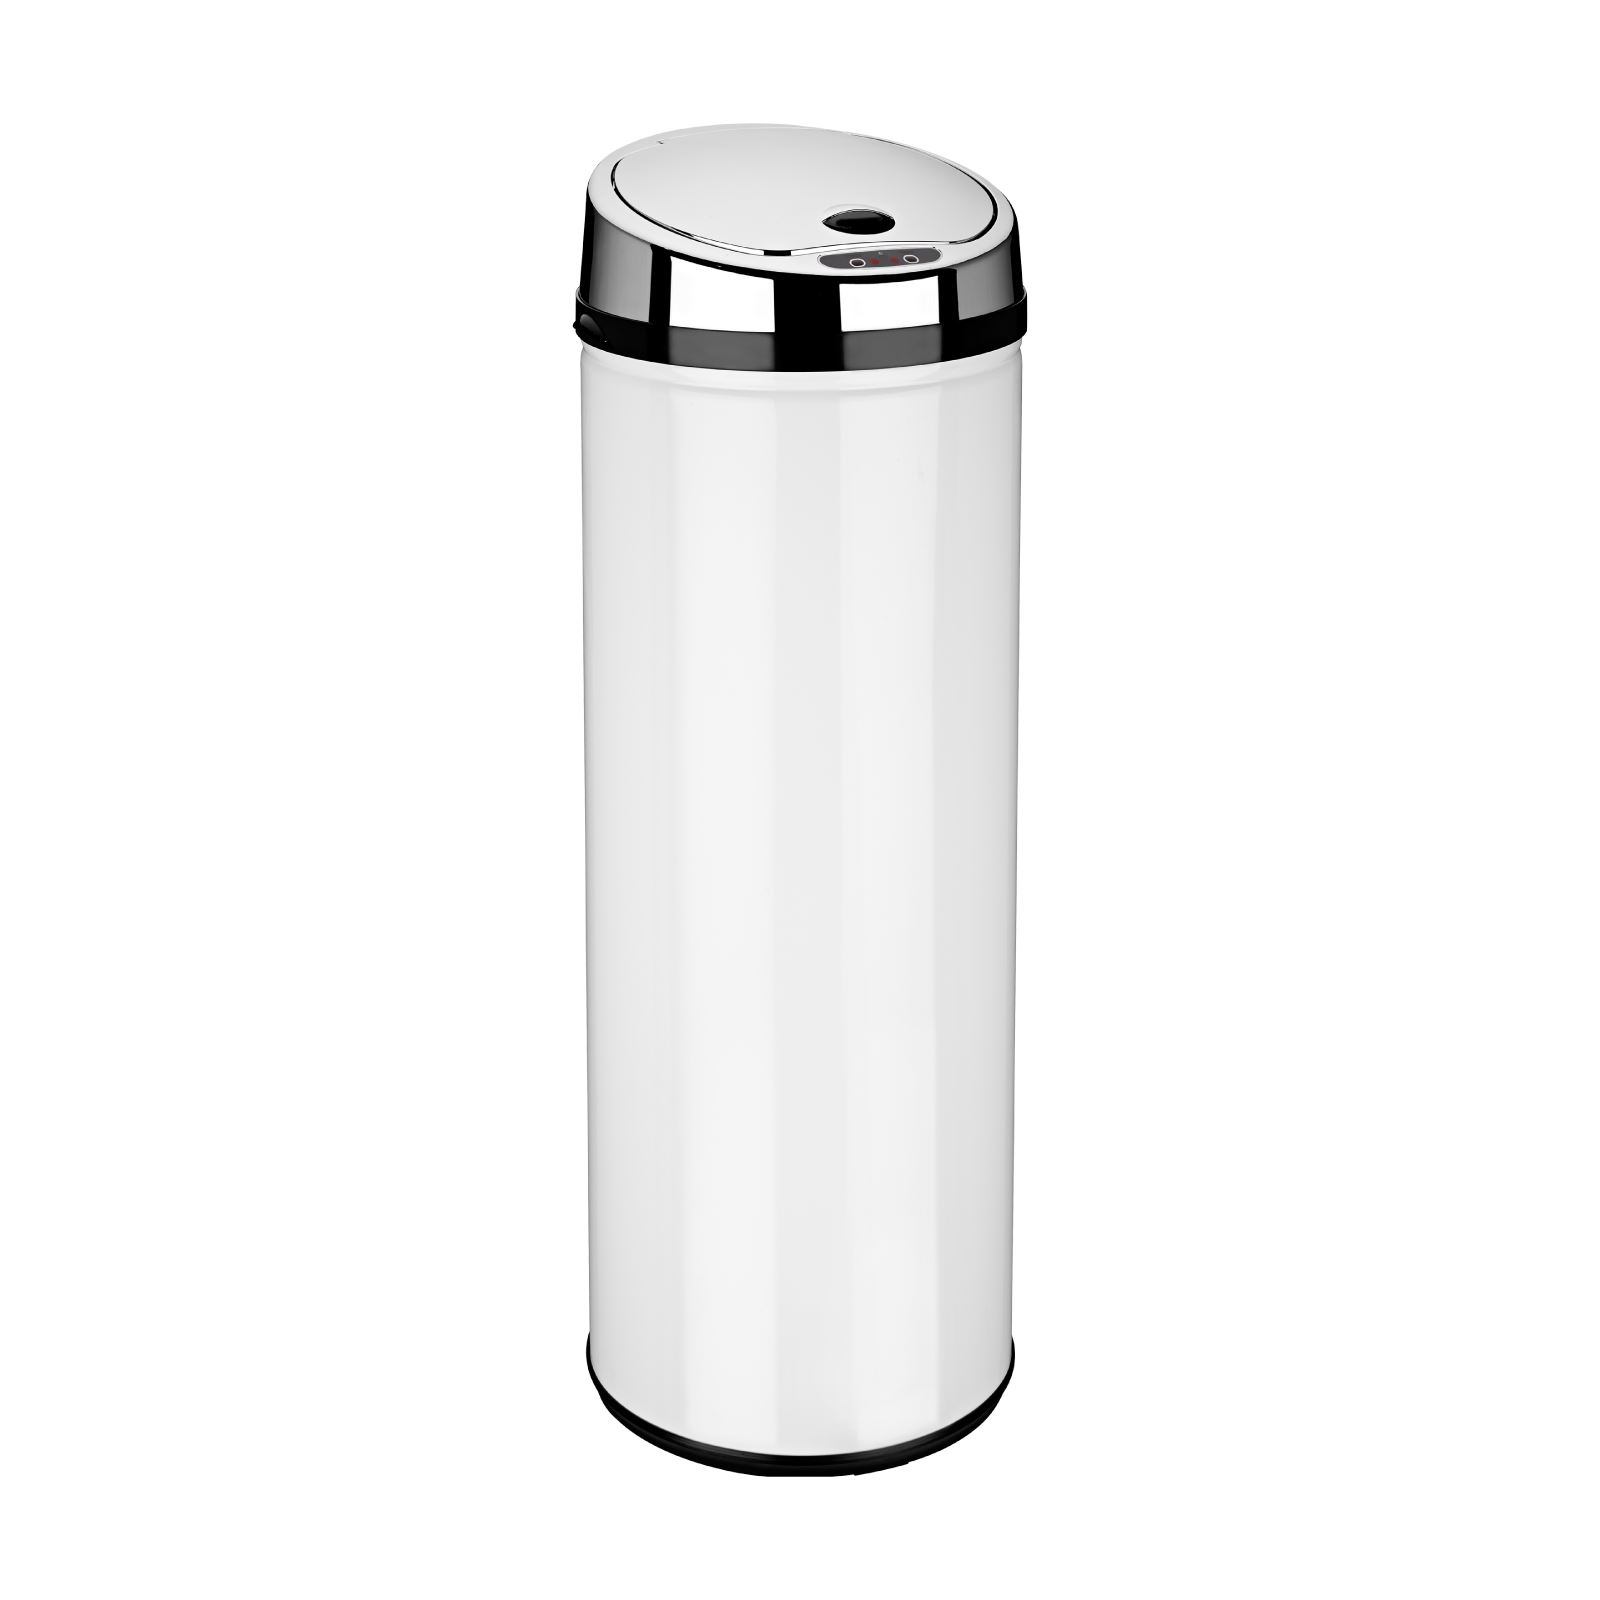 Kitchen Waste Bins: Dihl 30L 42L 50L Origin Round White Kitchen Waste